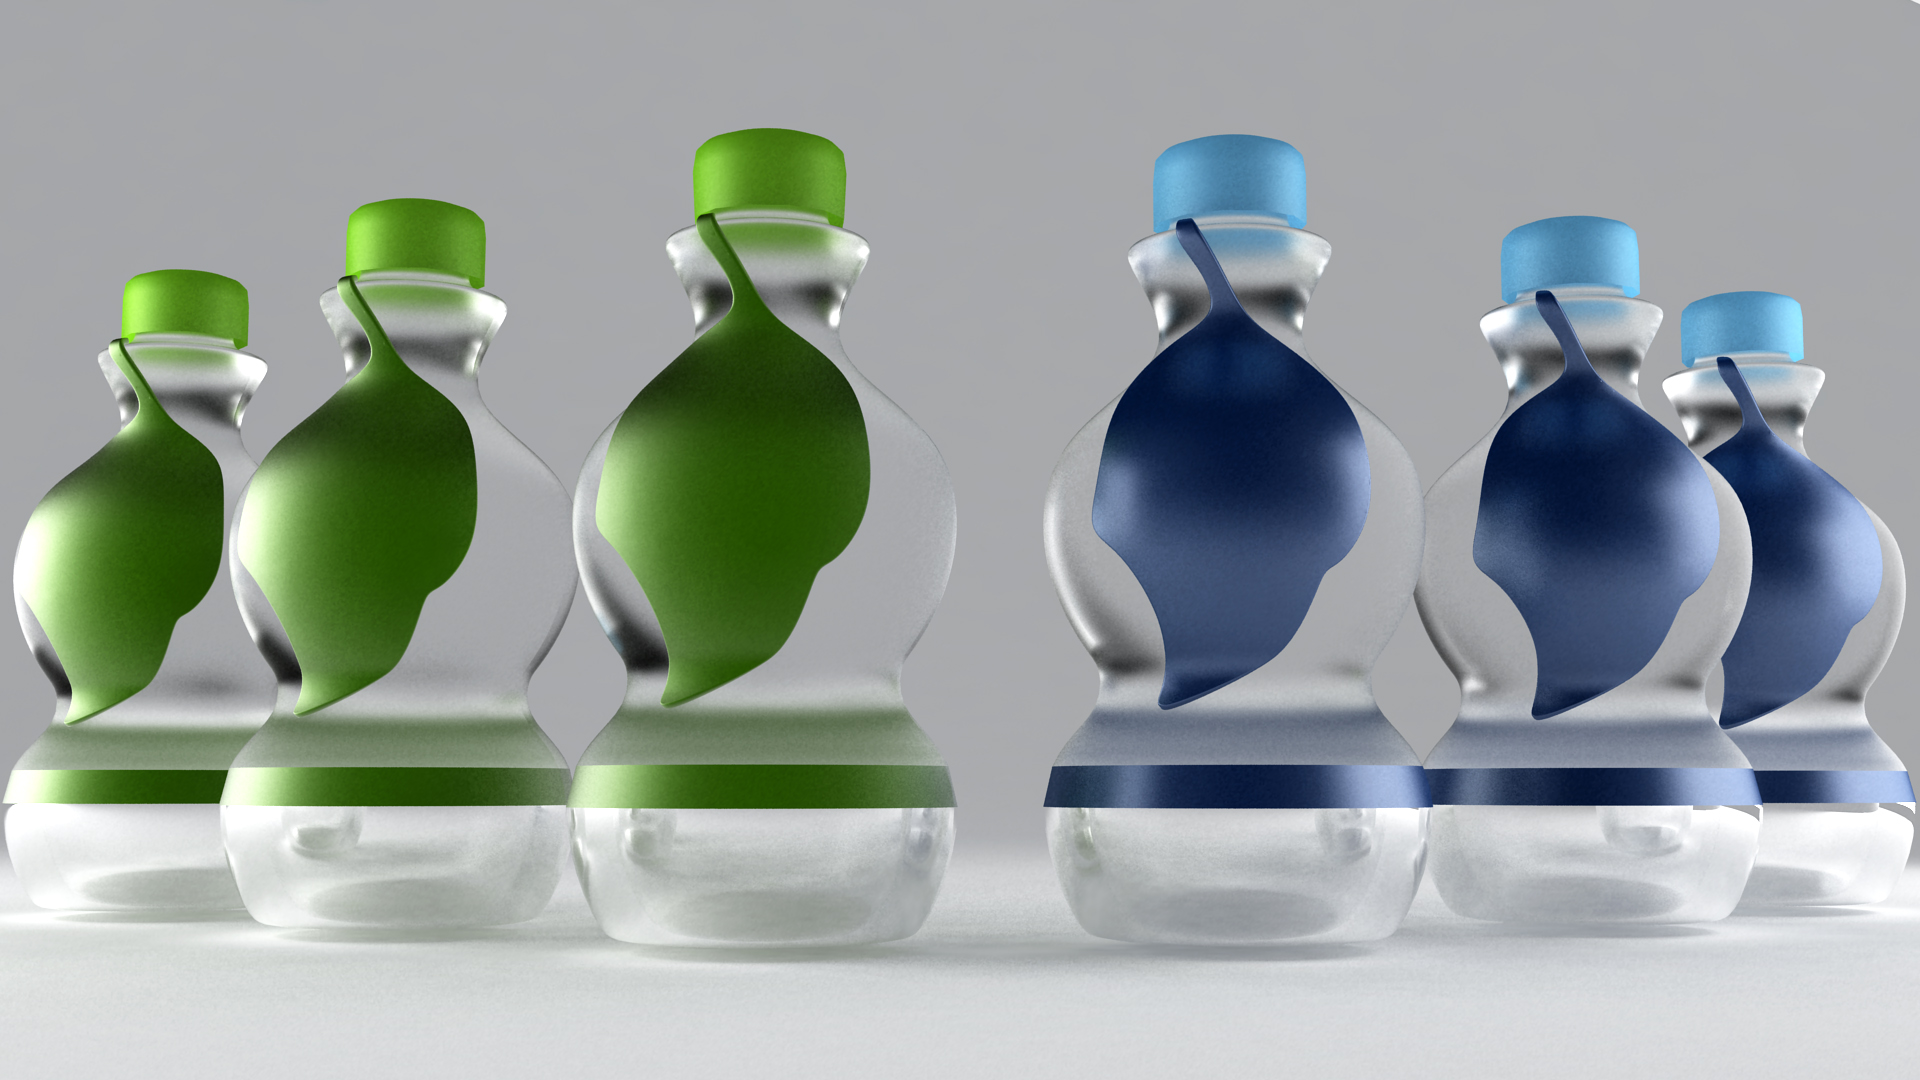 water bottle design by terry dong young lee at. Black Bedroom Furniture Sets. Home Design Ideas